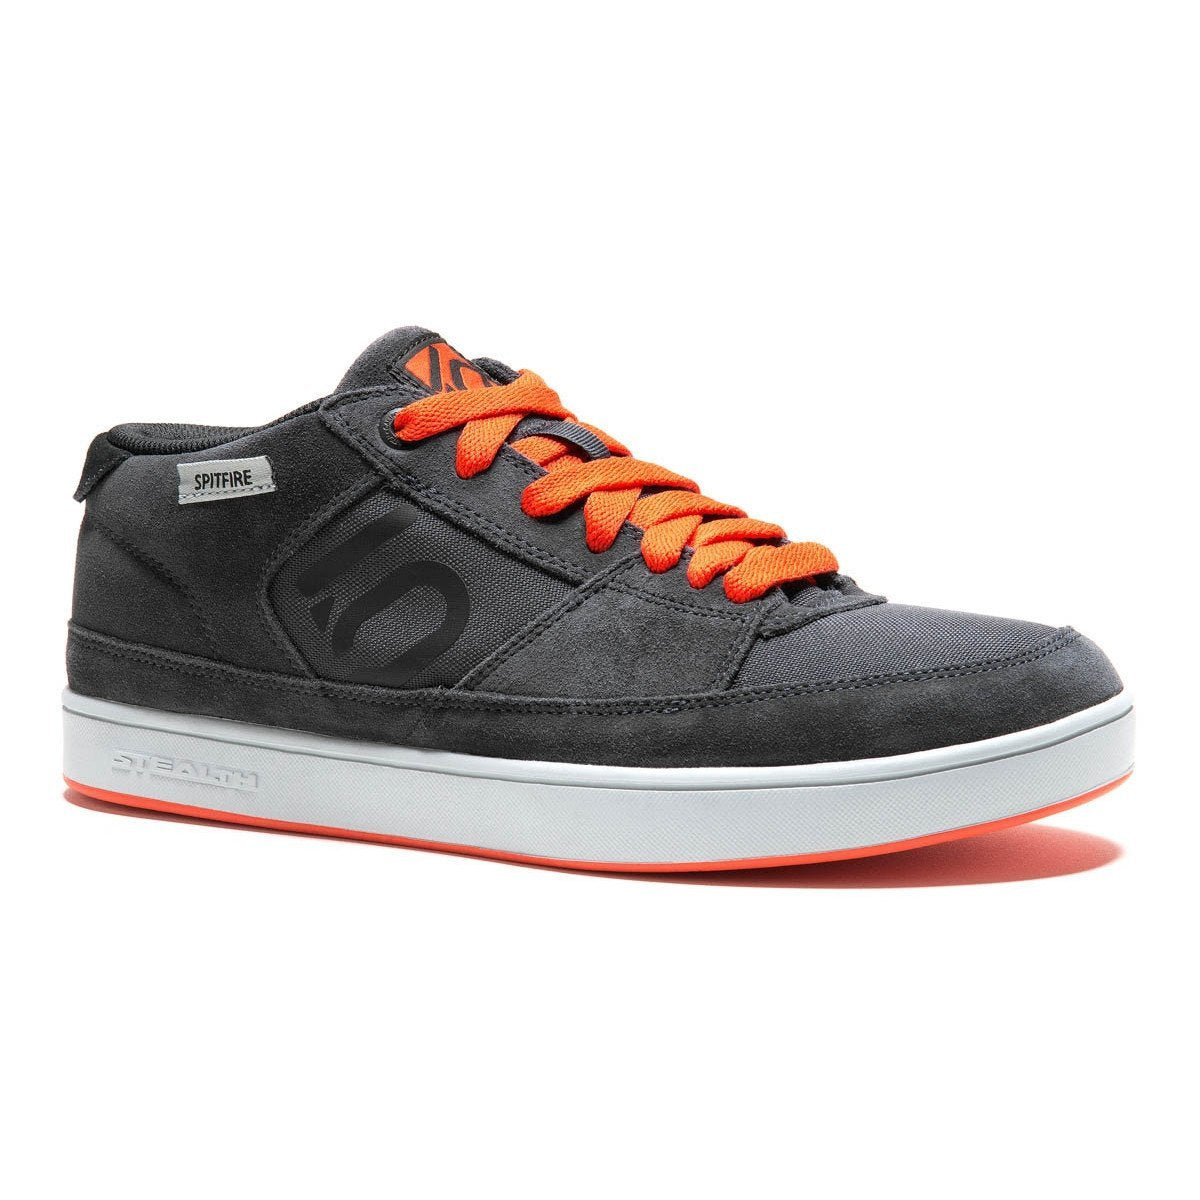 Five Ten Spitfire casual sports shoe, Dark Grey colour with orange laces, outer side view